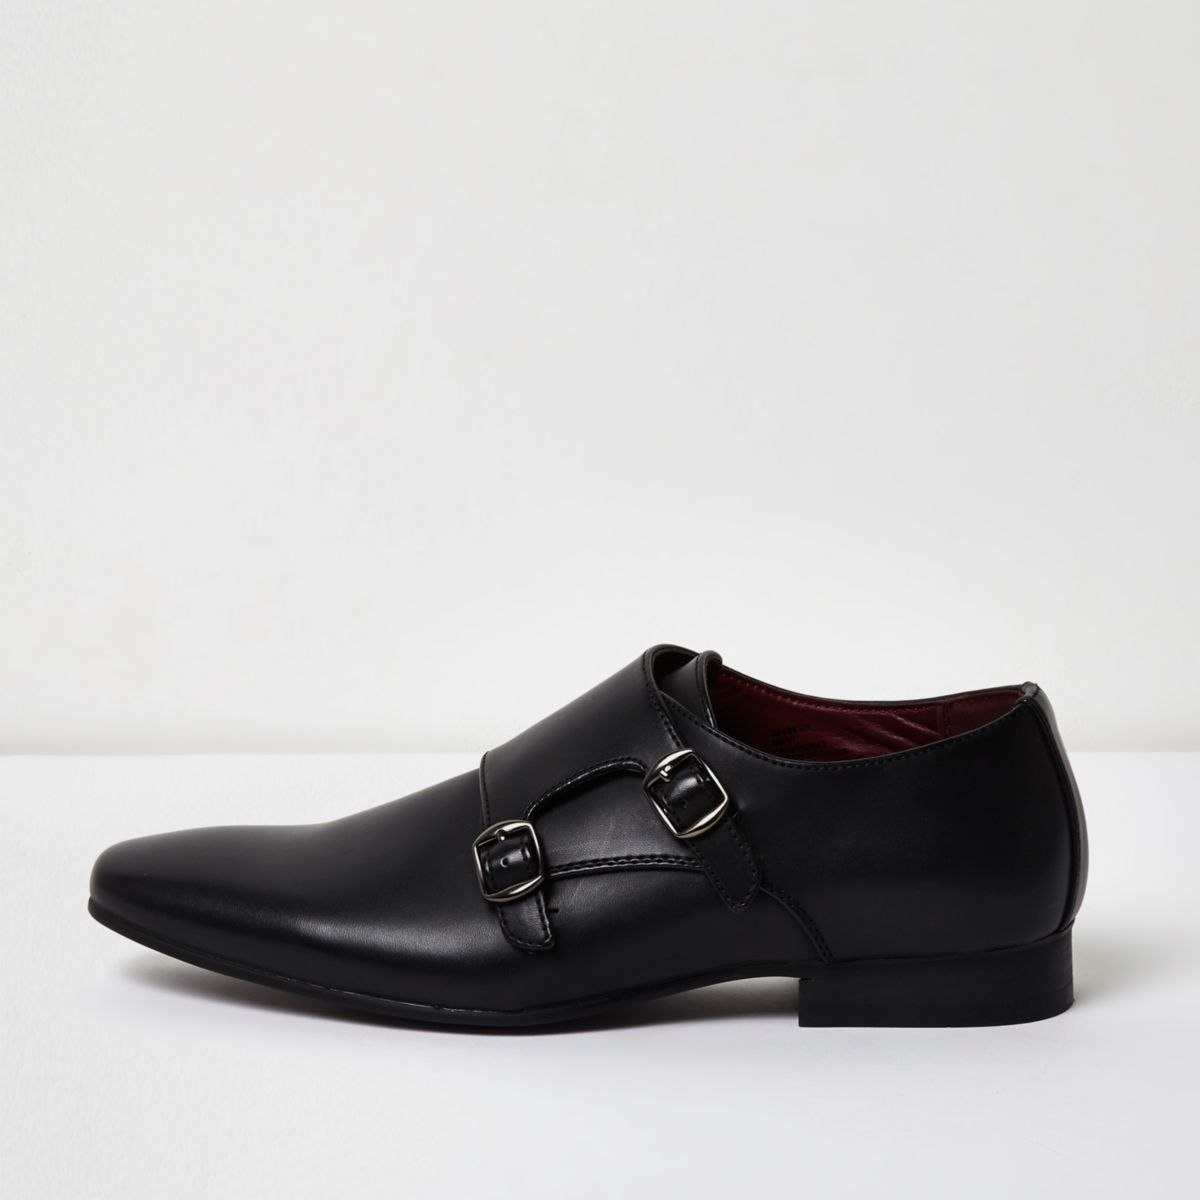 Black monk strap shoes